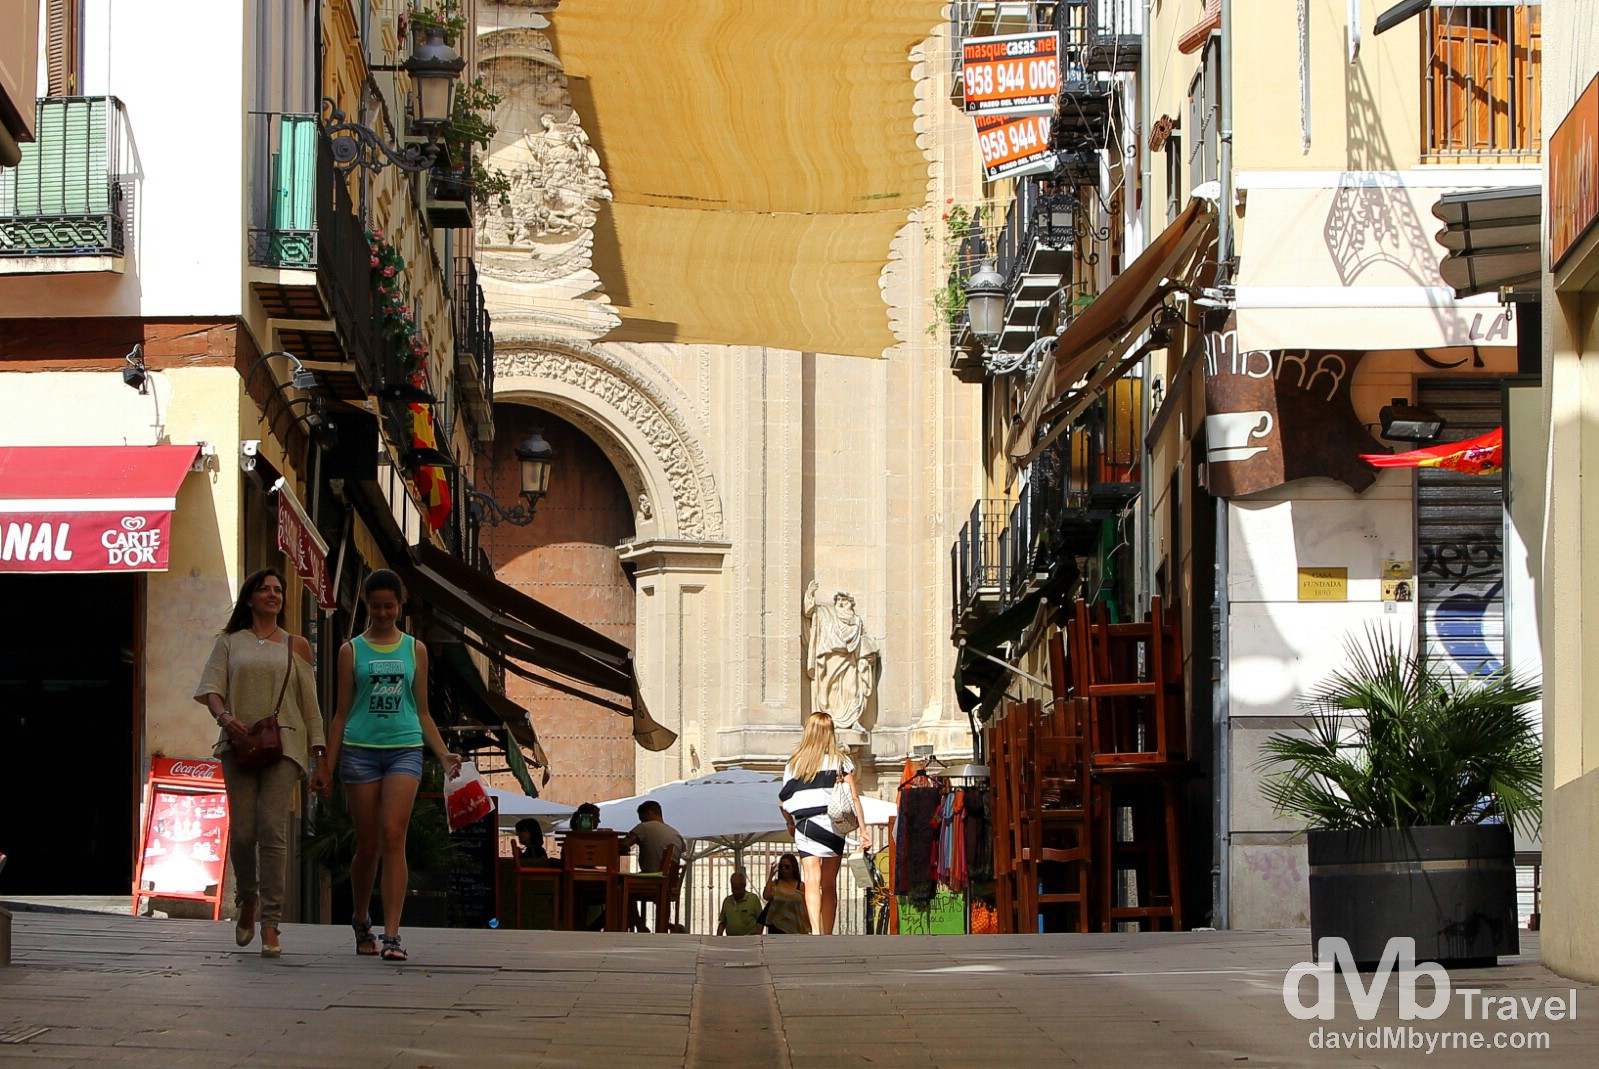 Calle Paz, Granada, Andalusia, Spain. June 11th, 2014.